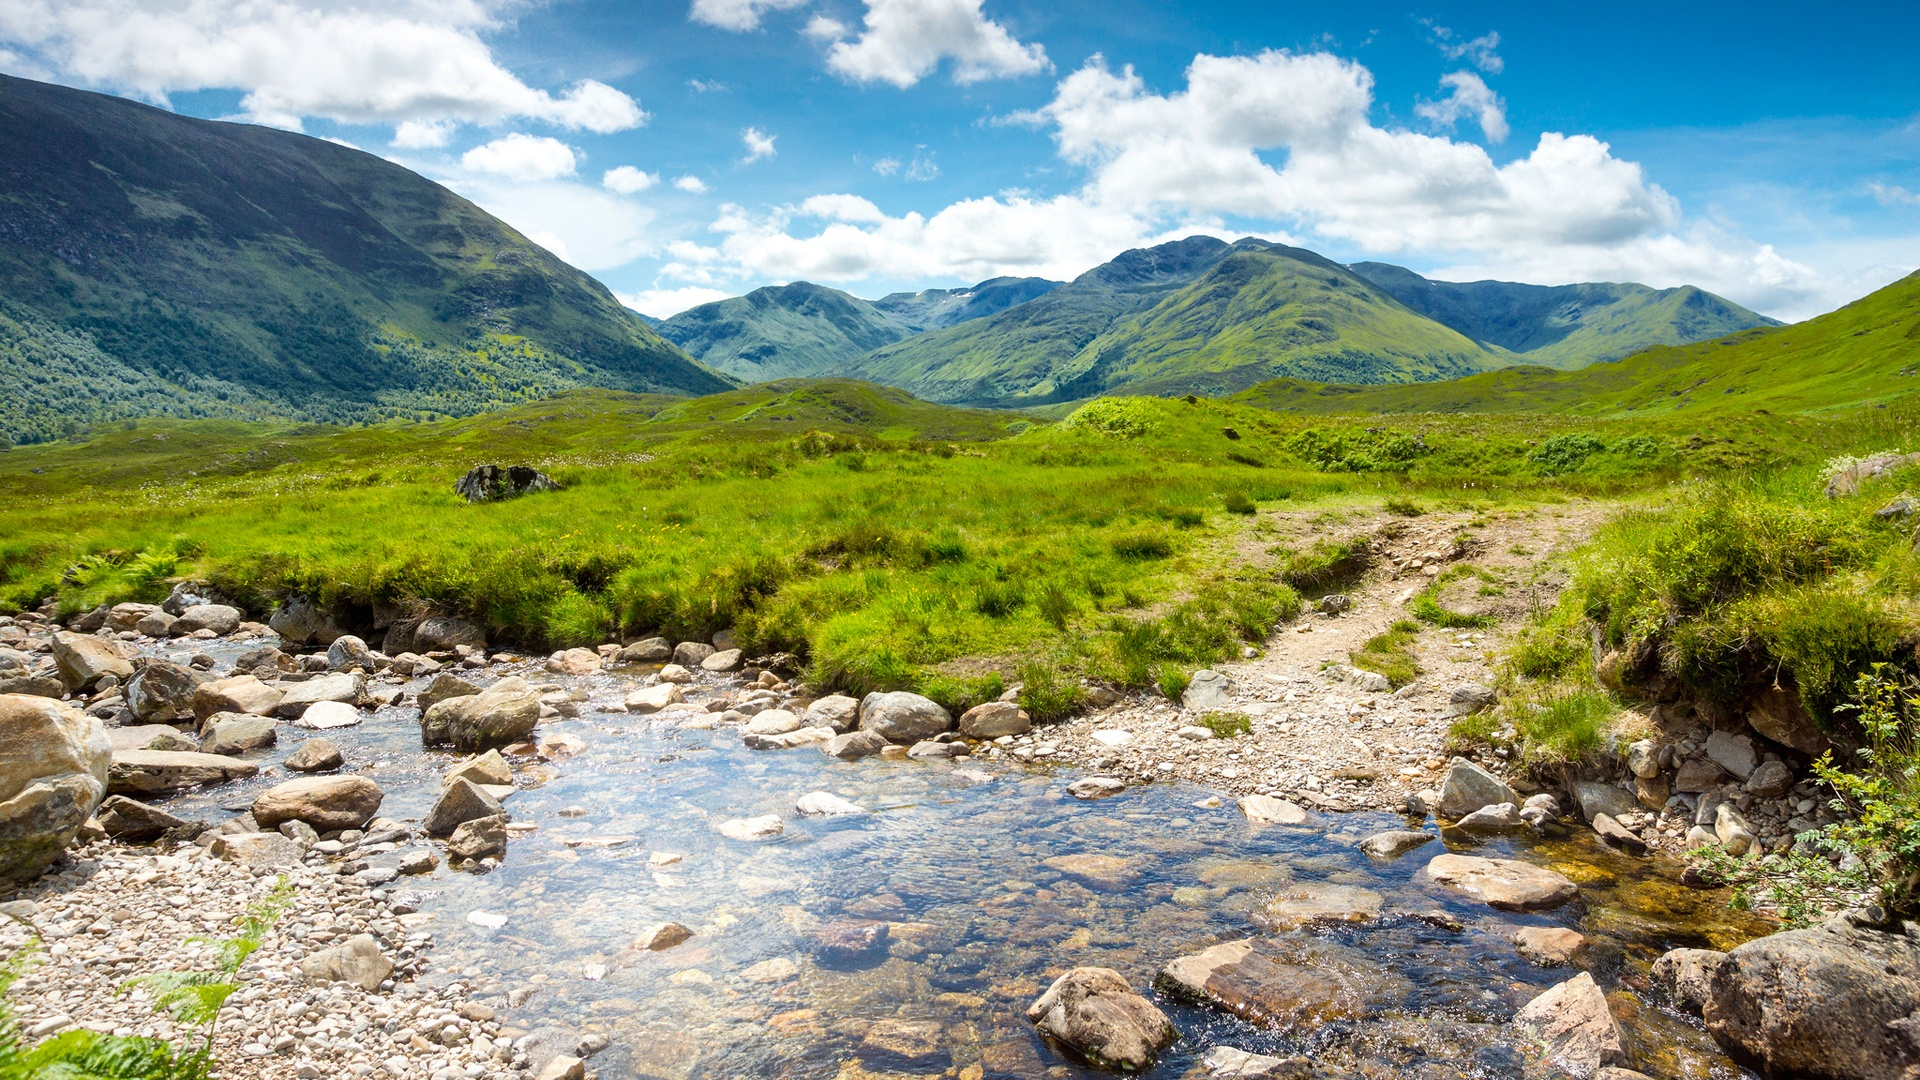 scotland natural scenery mountains - photo #1